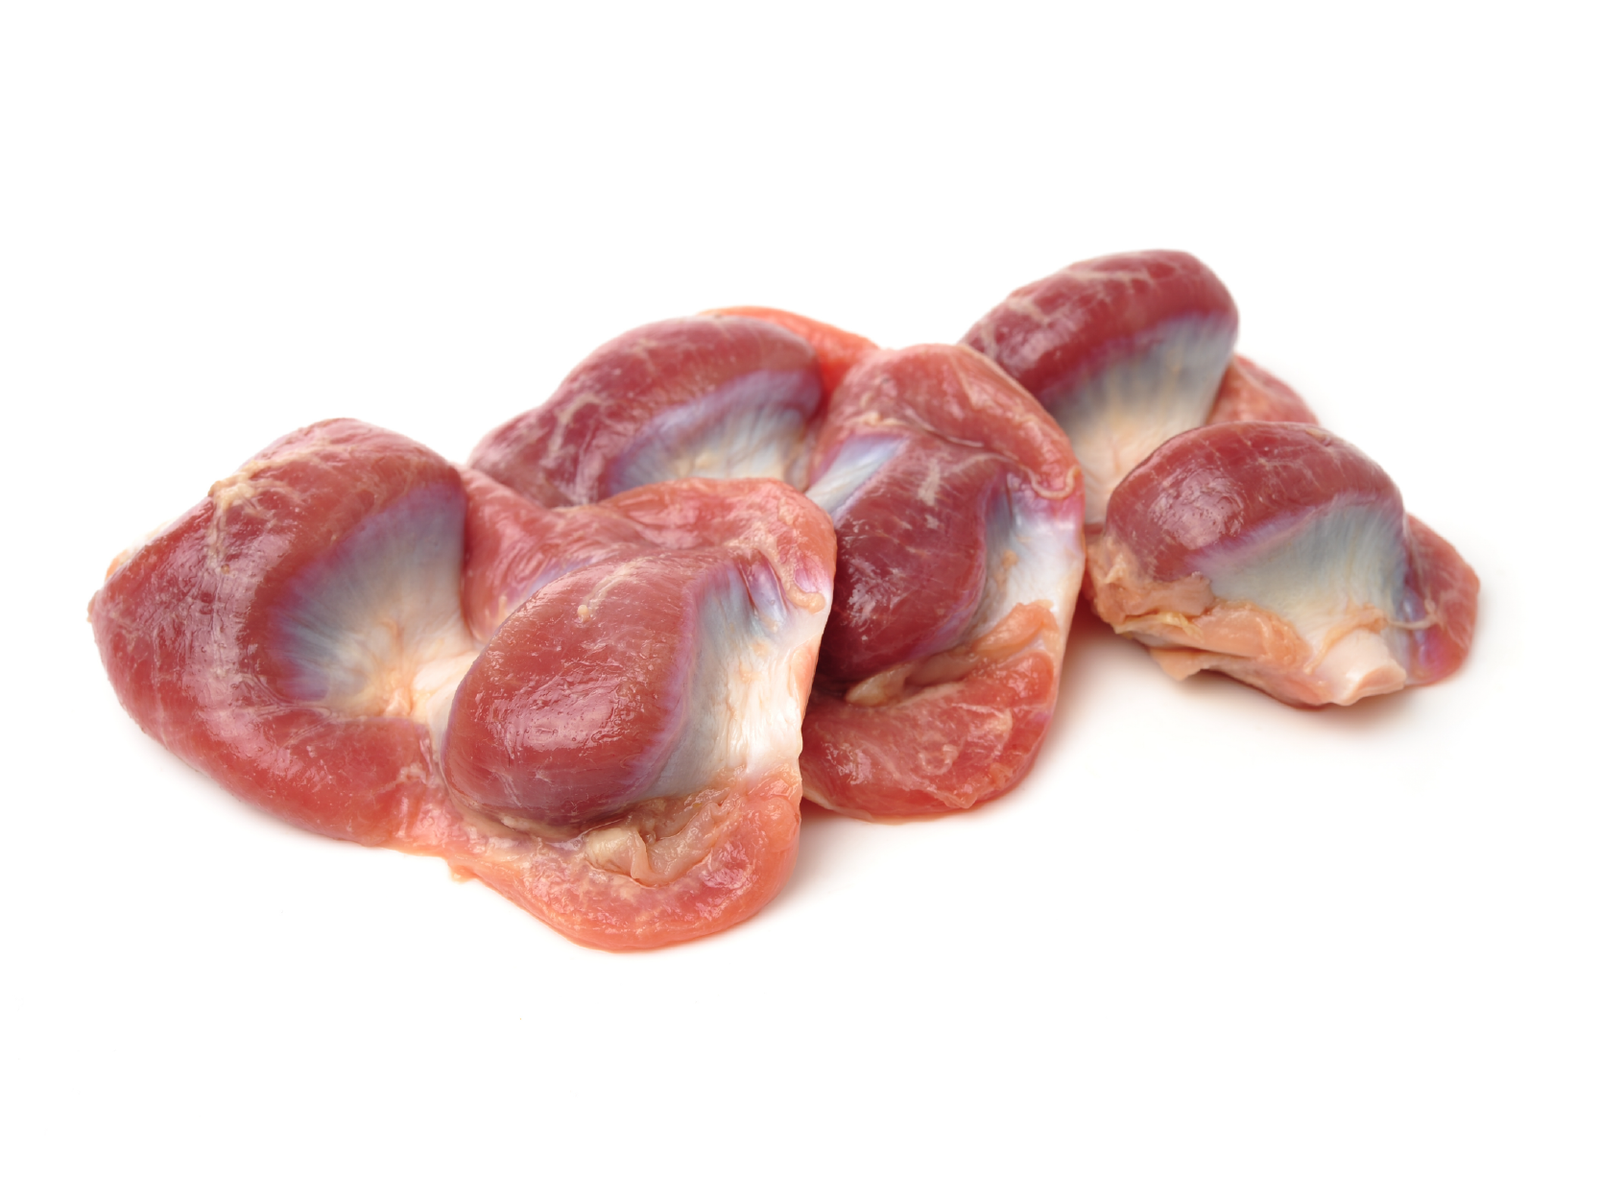 pasture raised chicken gizzards